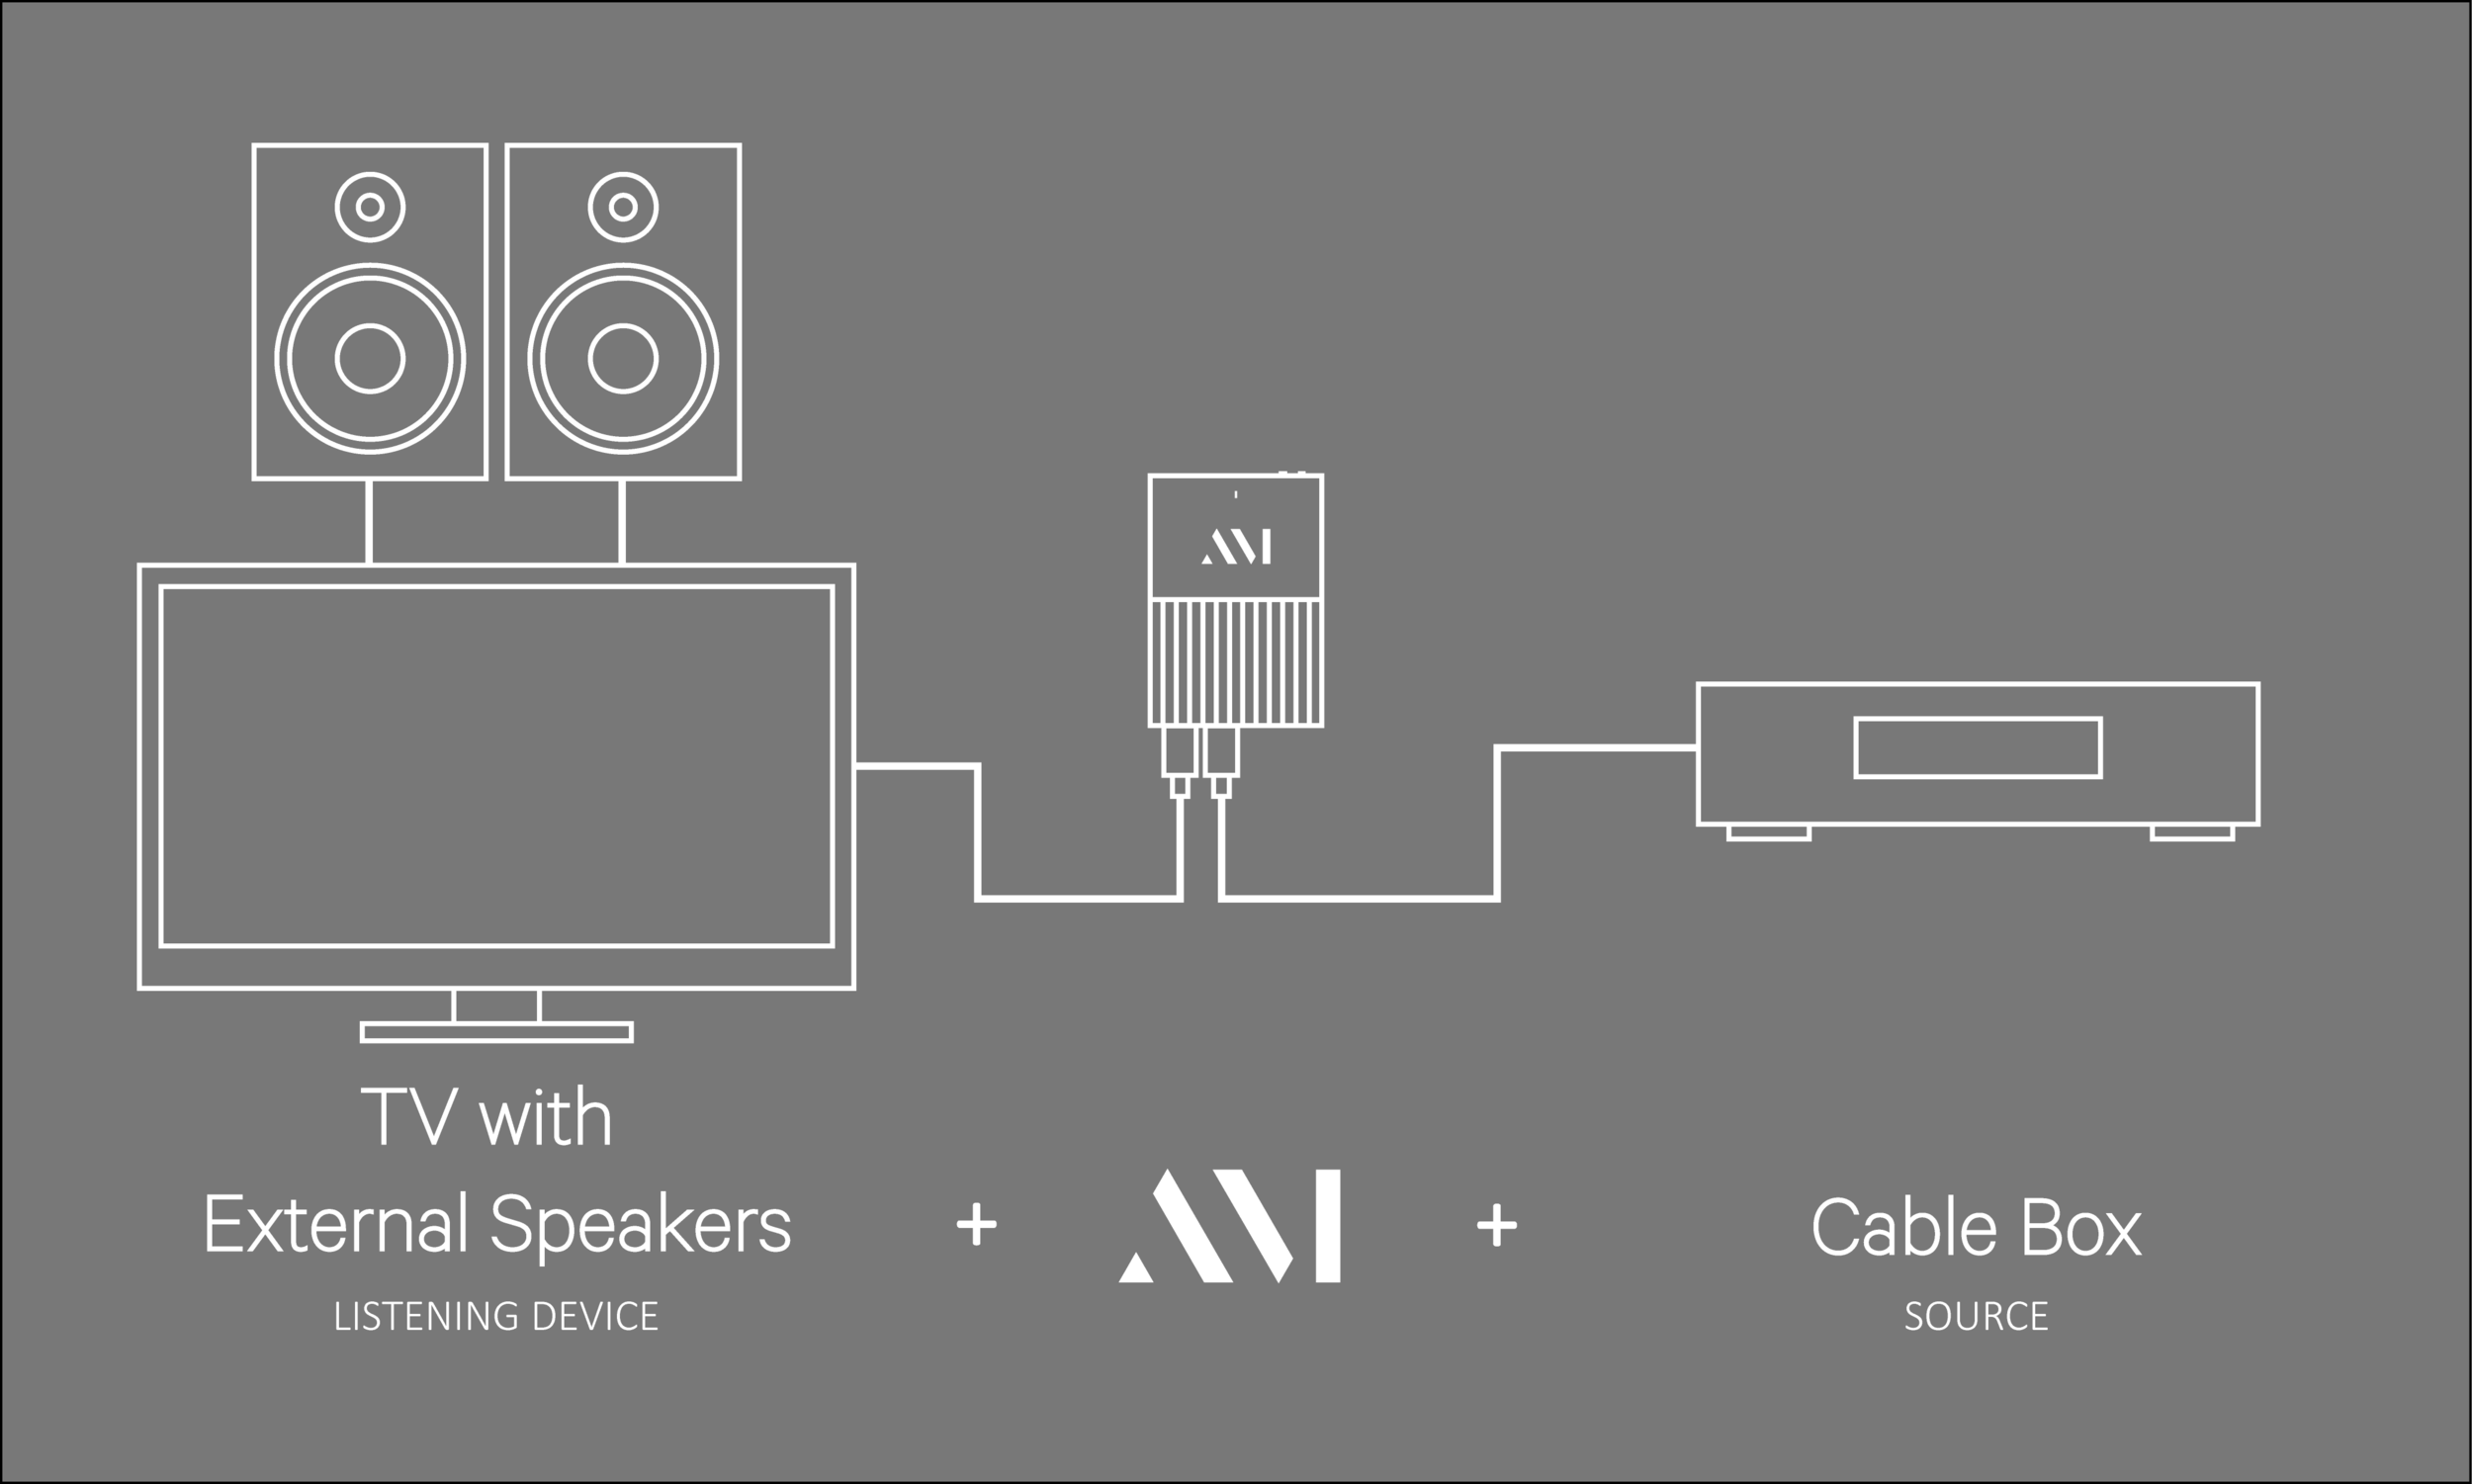 Configurations_Cable_2_TVwithSpeakers.png